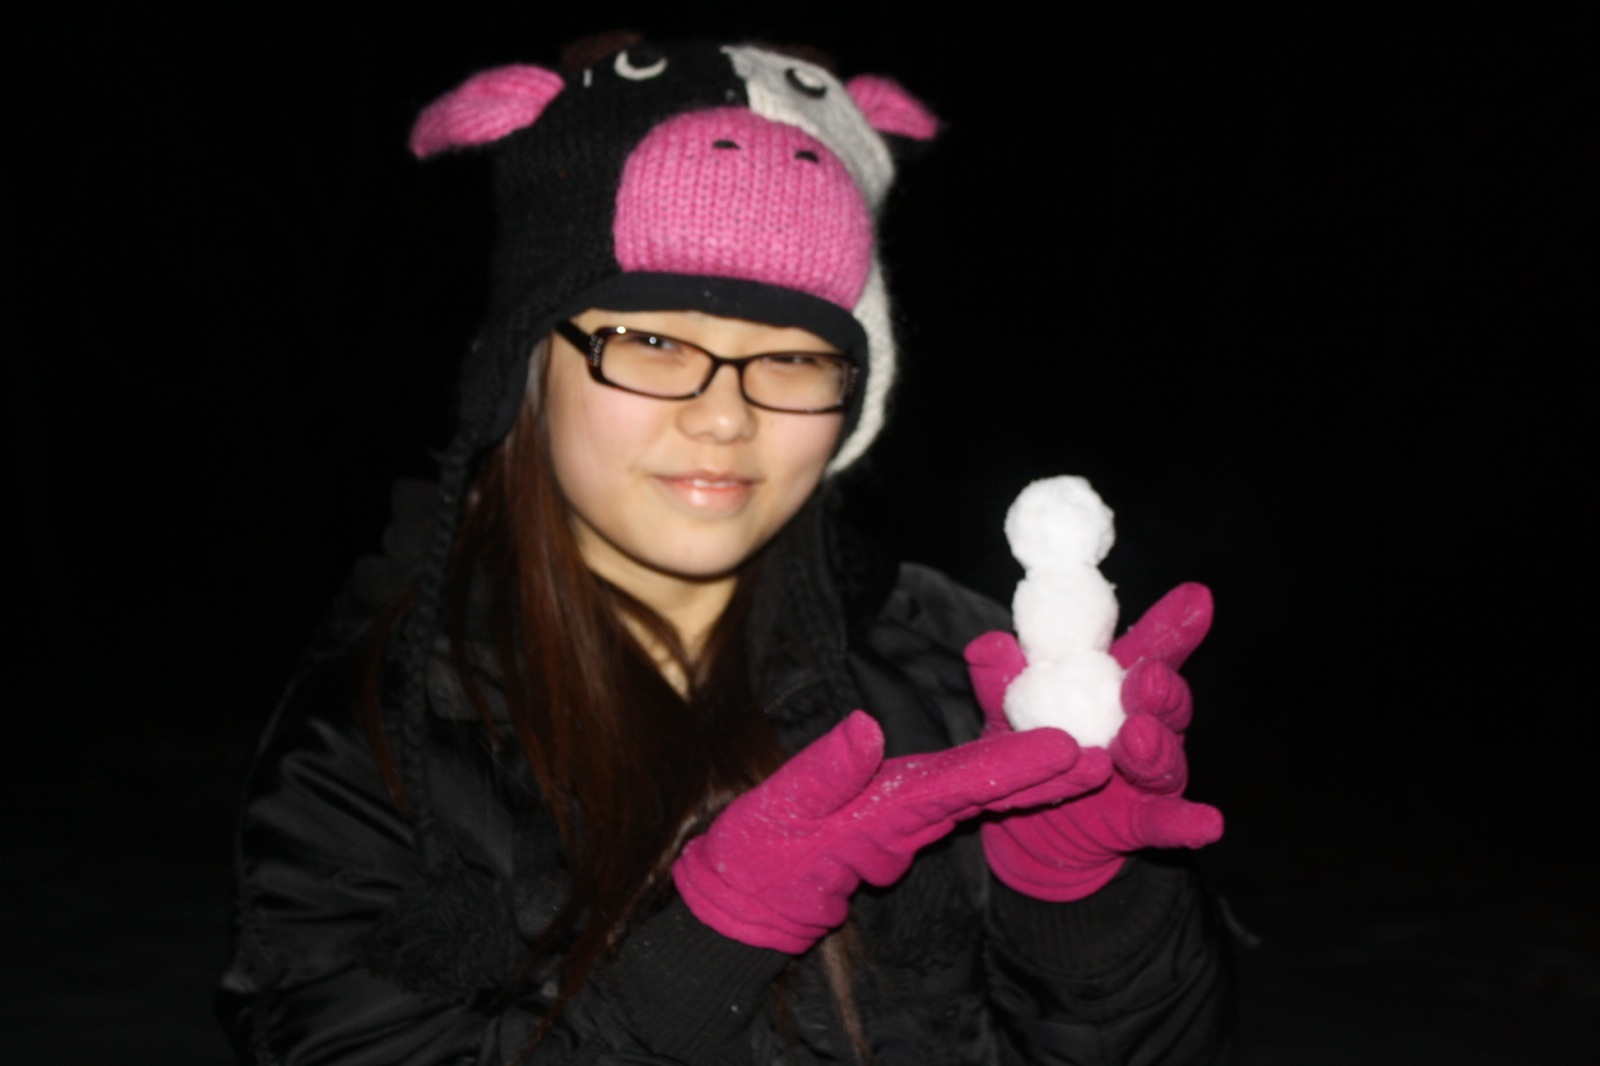 A girl wearing winter clothes smiles while holding a miniature snowman.